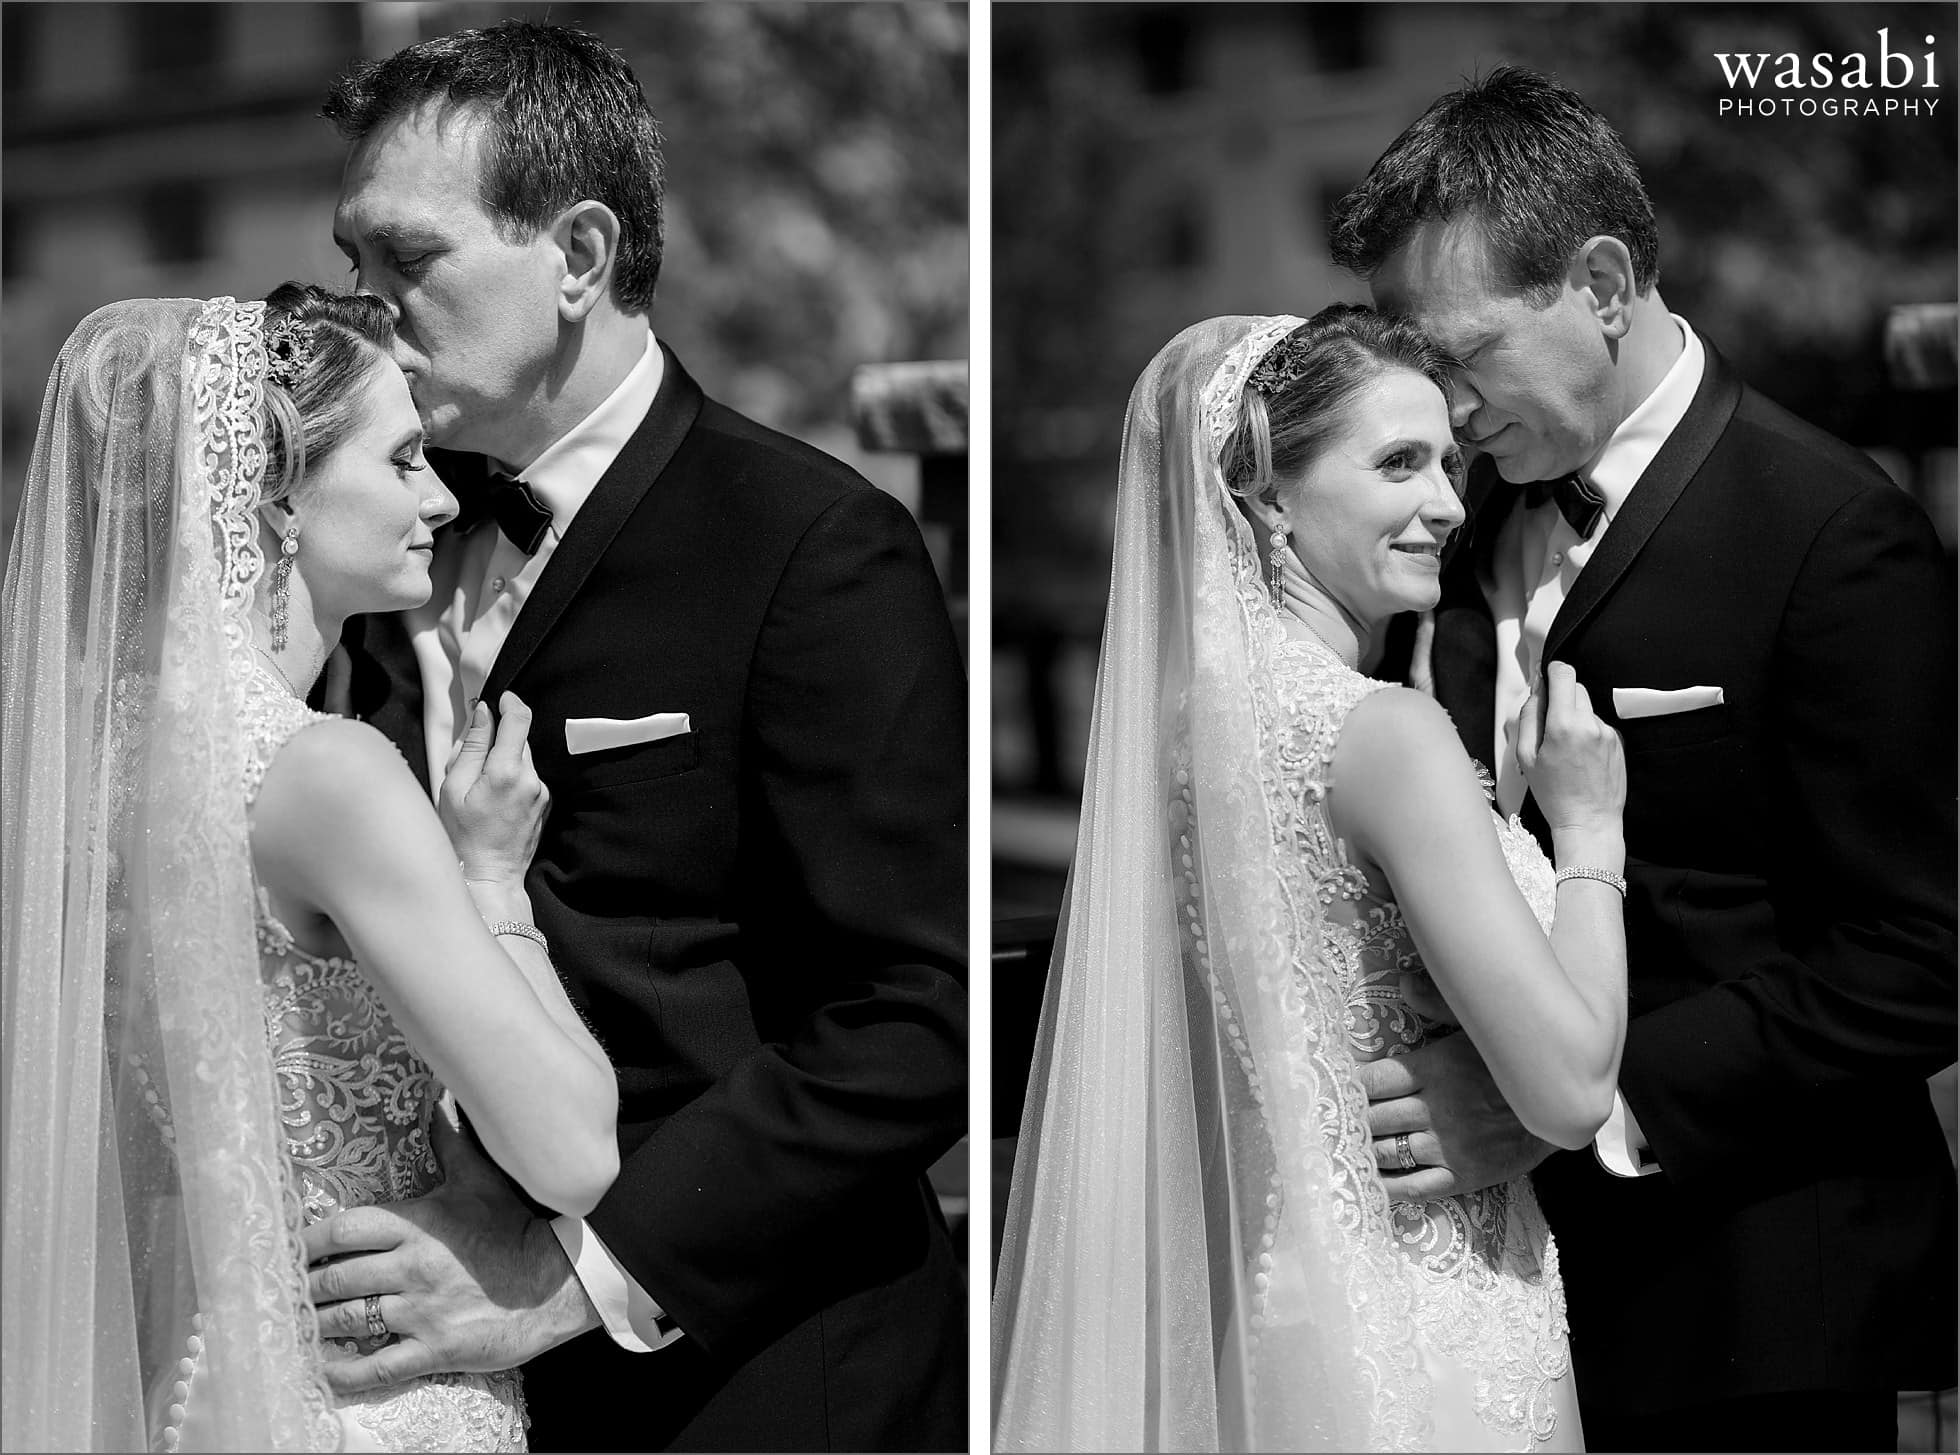 black and white close up portraits of bride and groom posing for portraits